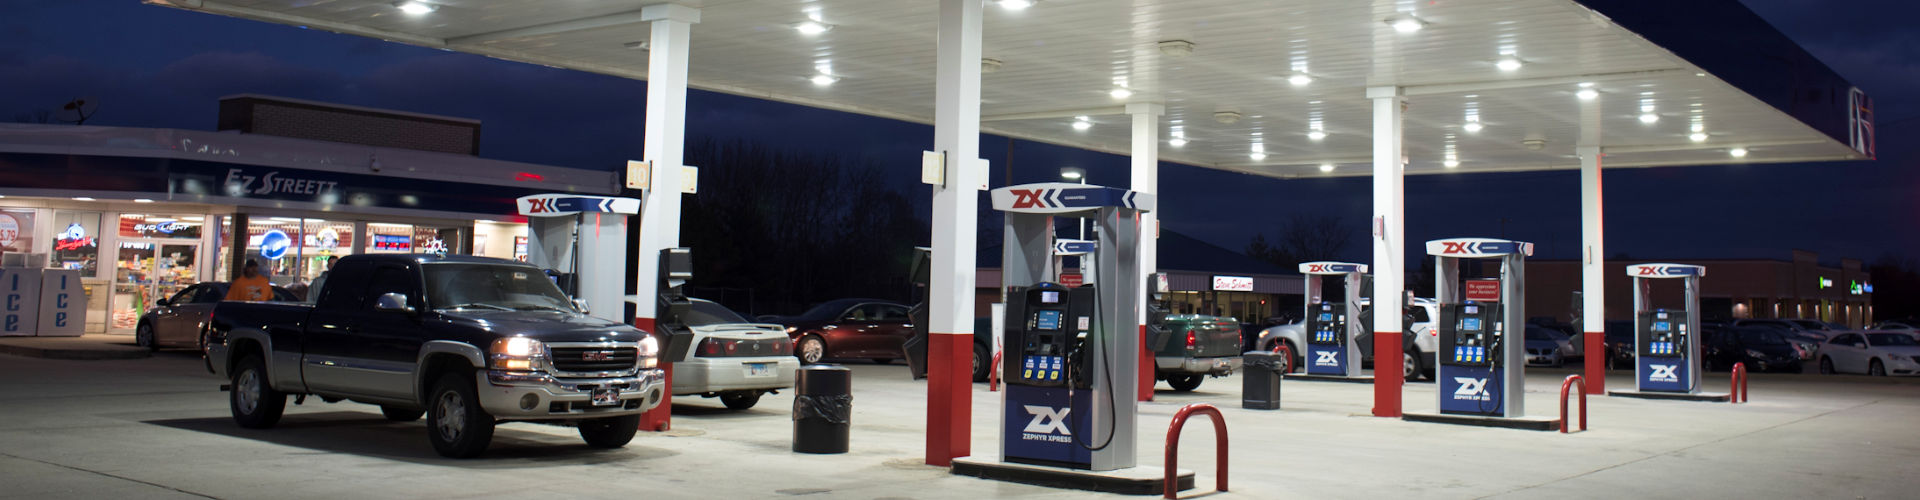 zx-gas-station-store-night